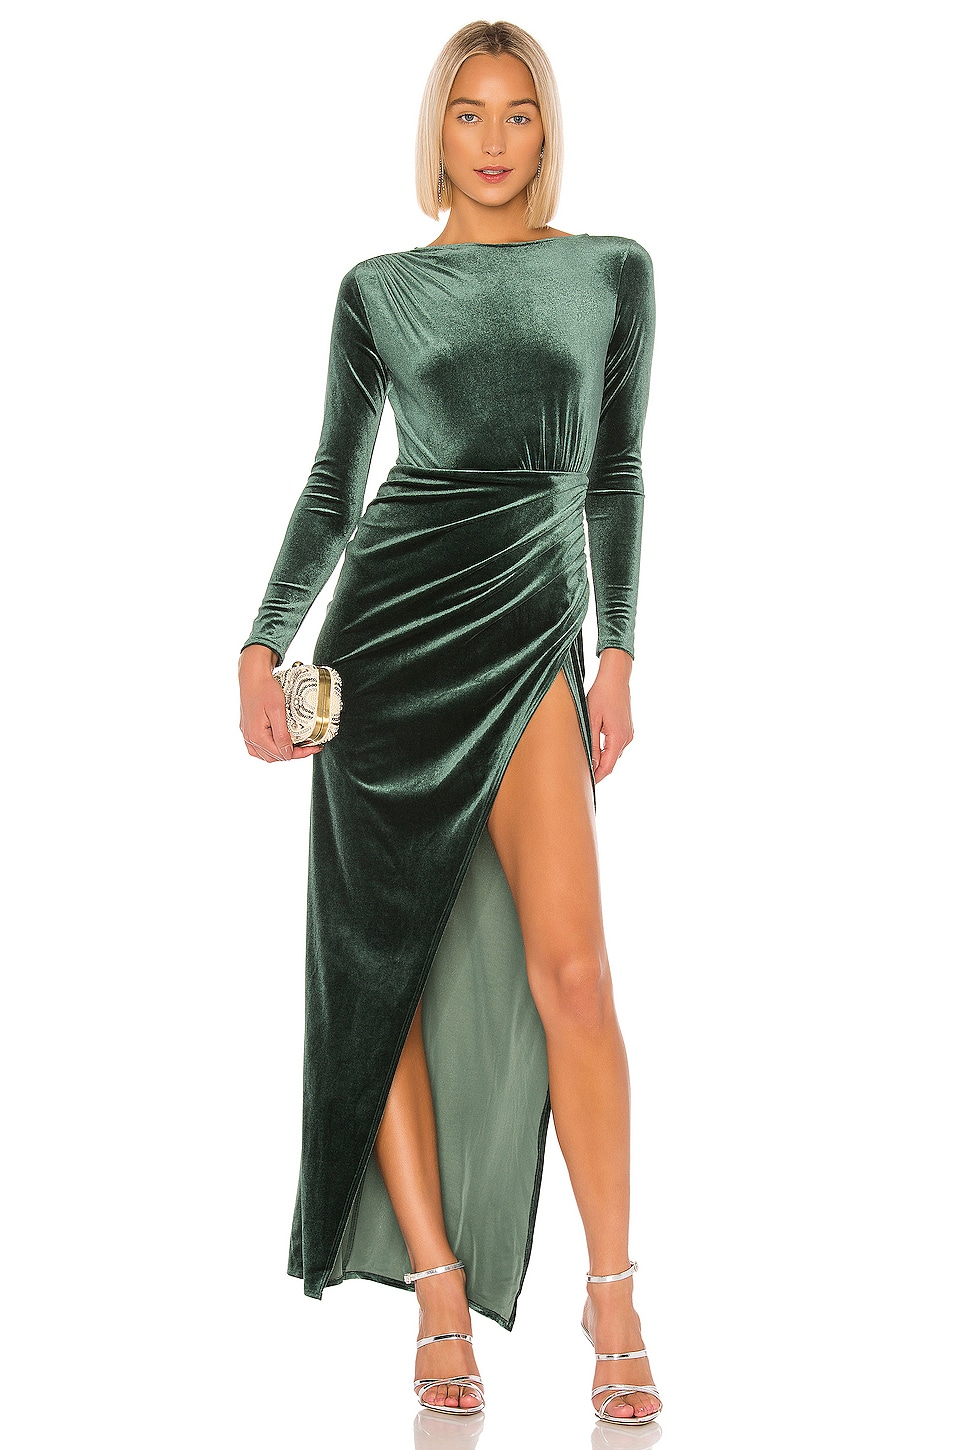 Michael Costello x REVOLVE Gregory Gown in Emerald Green